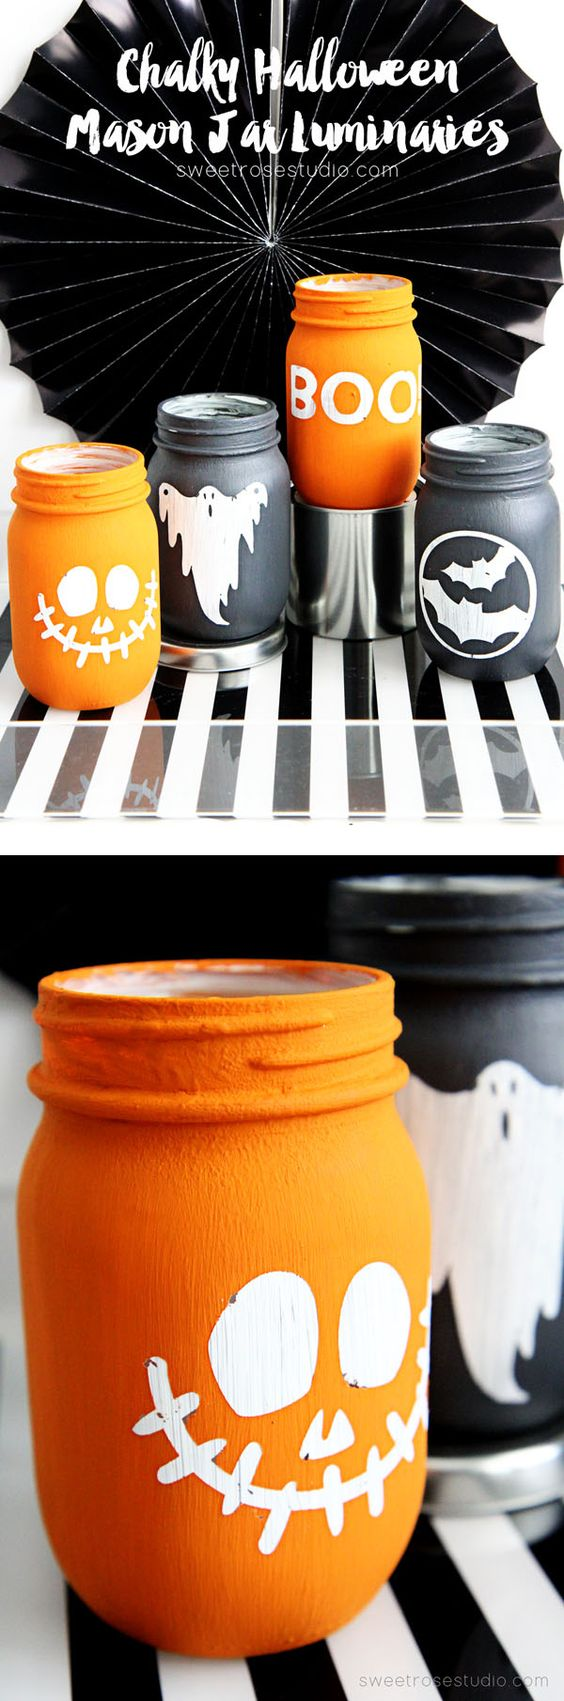 Chalky Halloween Mason Jar Luminaries .